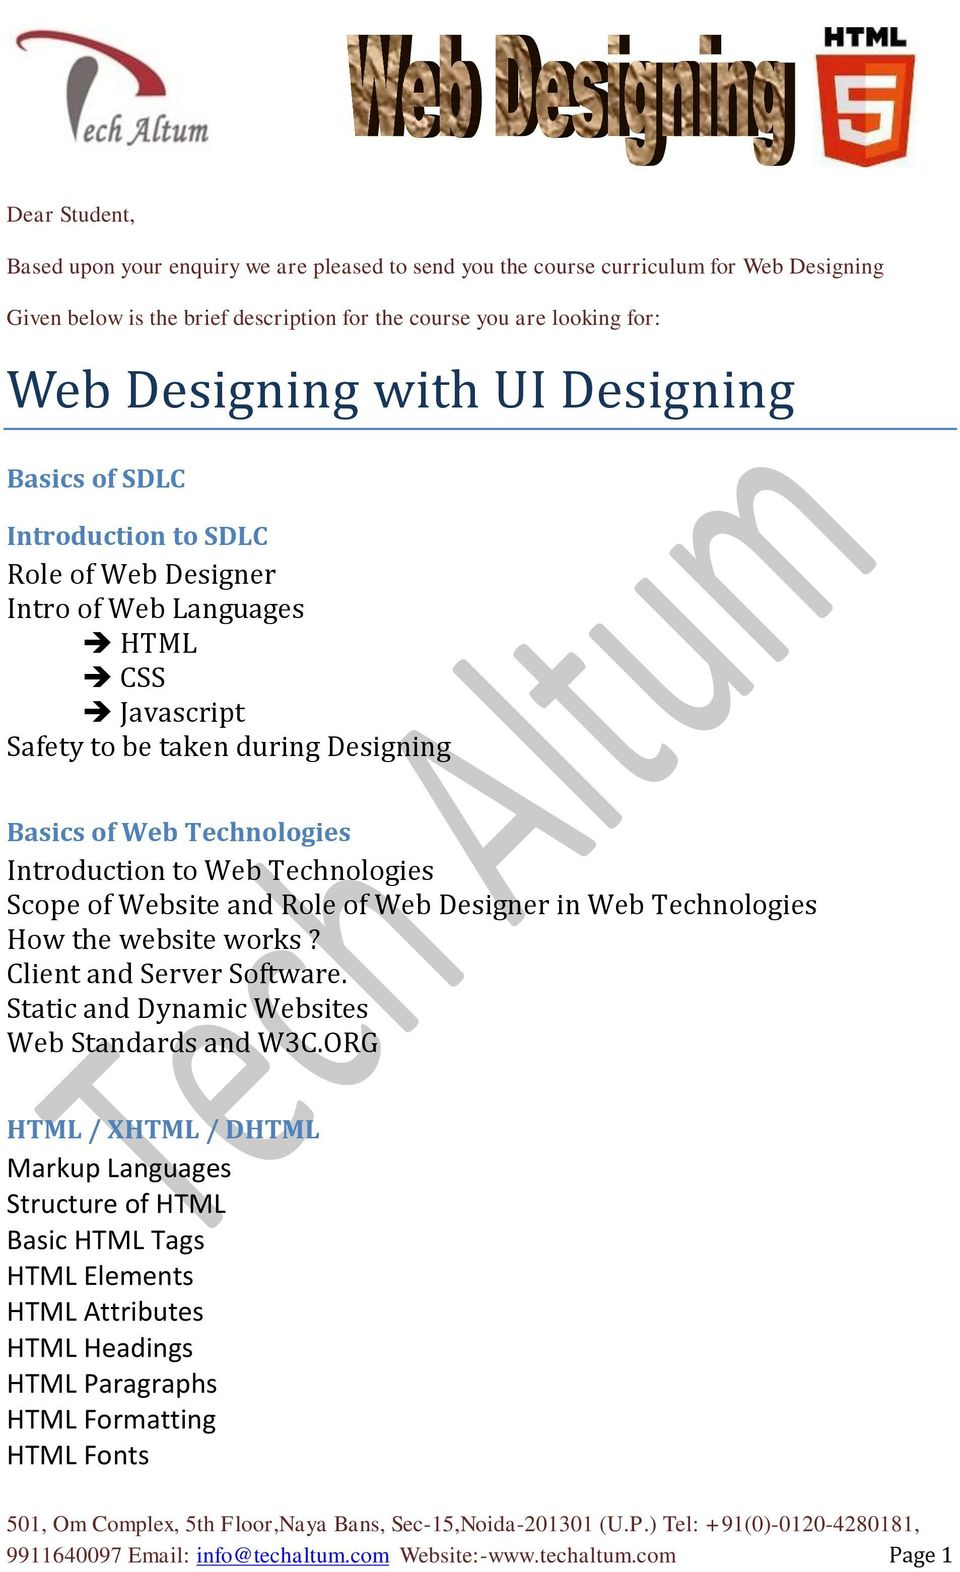 Technologies Scope of Website and Role of Web Designer in Web Technologies How the website works? Client and Server Software. Static and Dynamic Websites Web Standards and W3C.